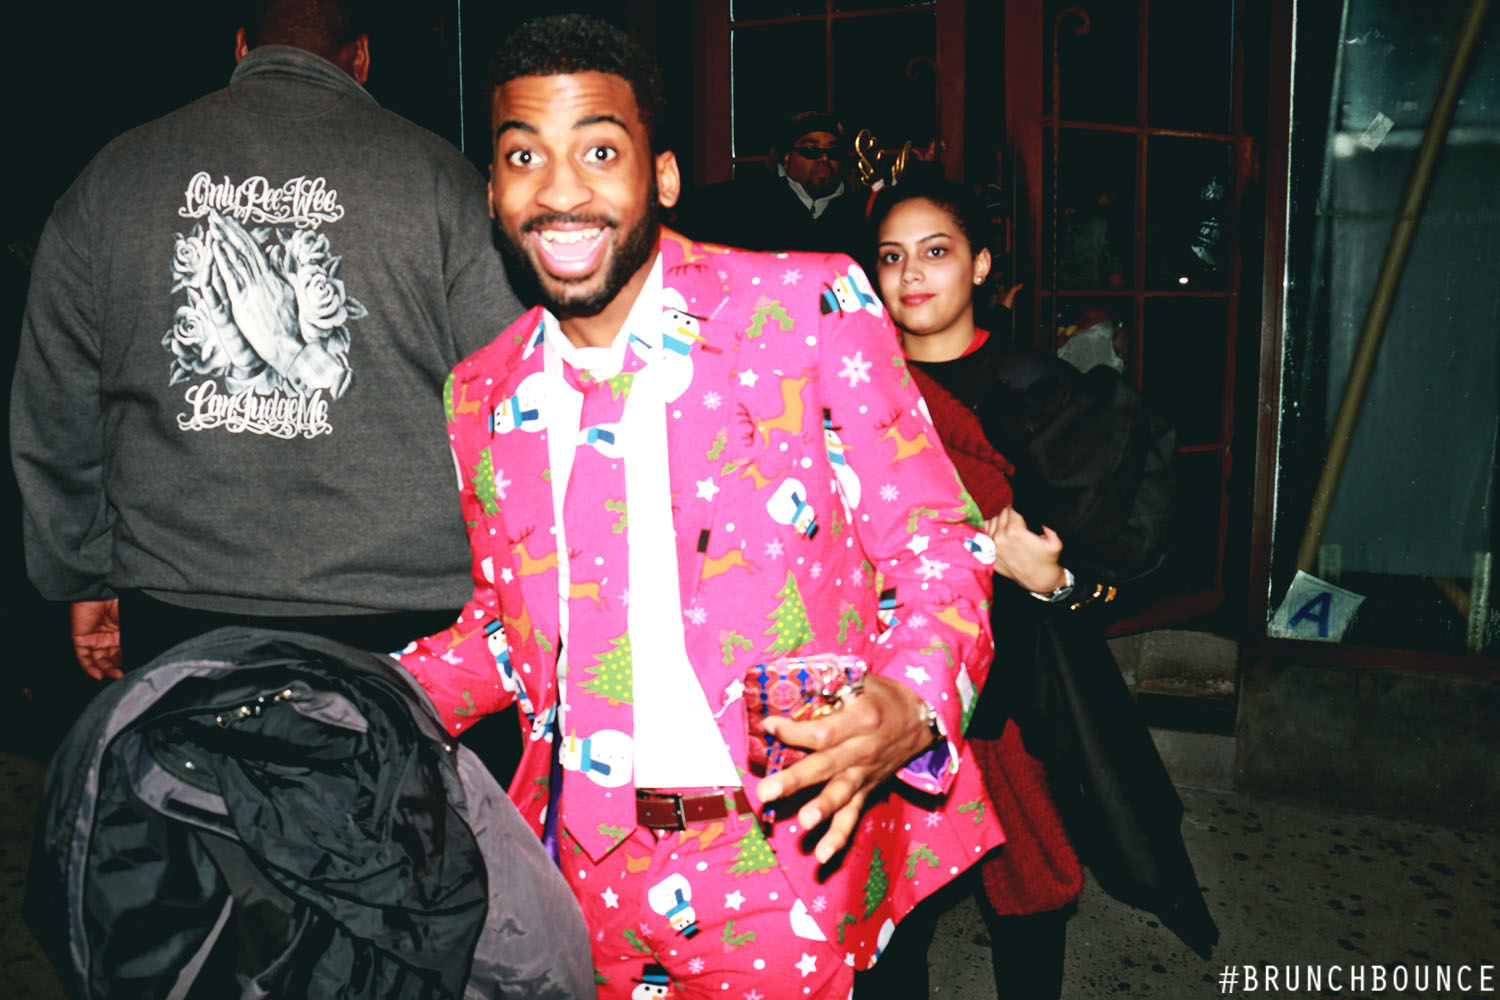 brunchbounce-ugly-christmas-sweater-party-122014_15896966197_o.jpg